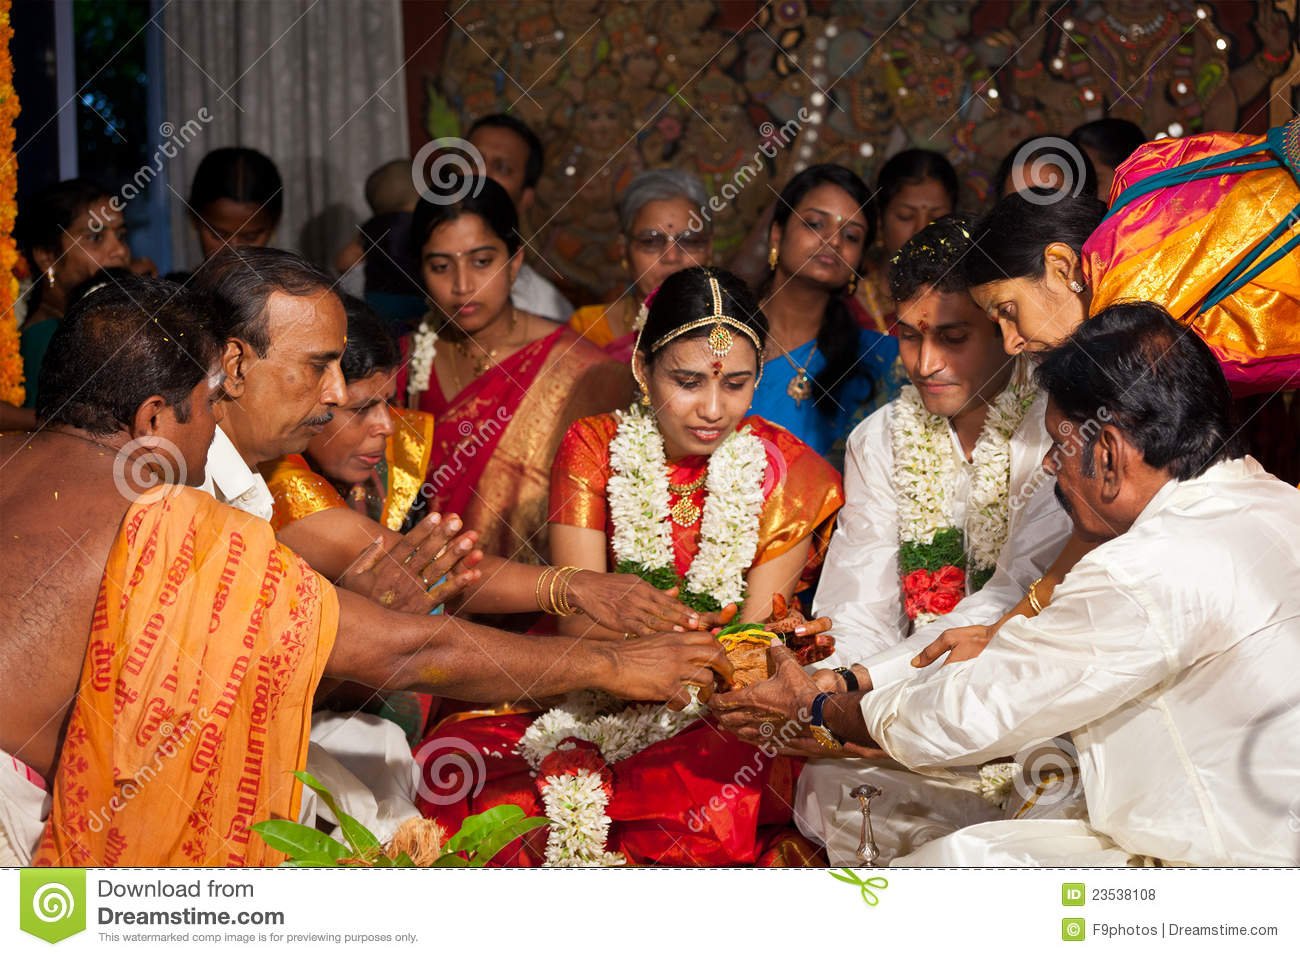 Indisches (Tamil) traditionelles Wedding Cerremony